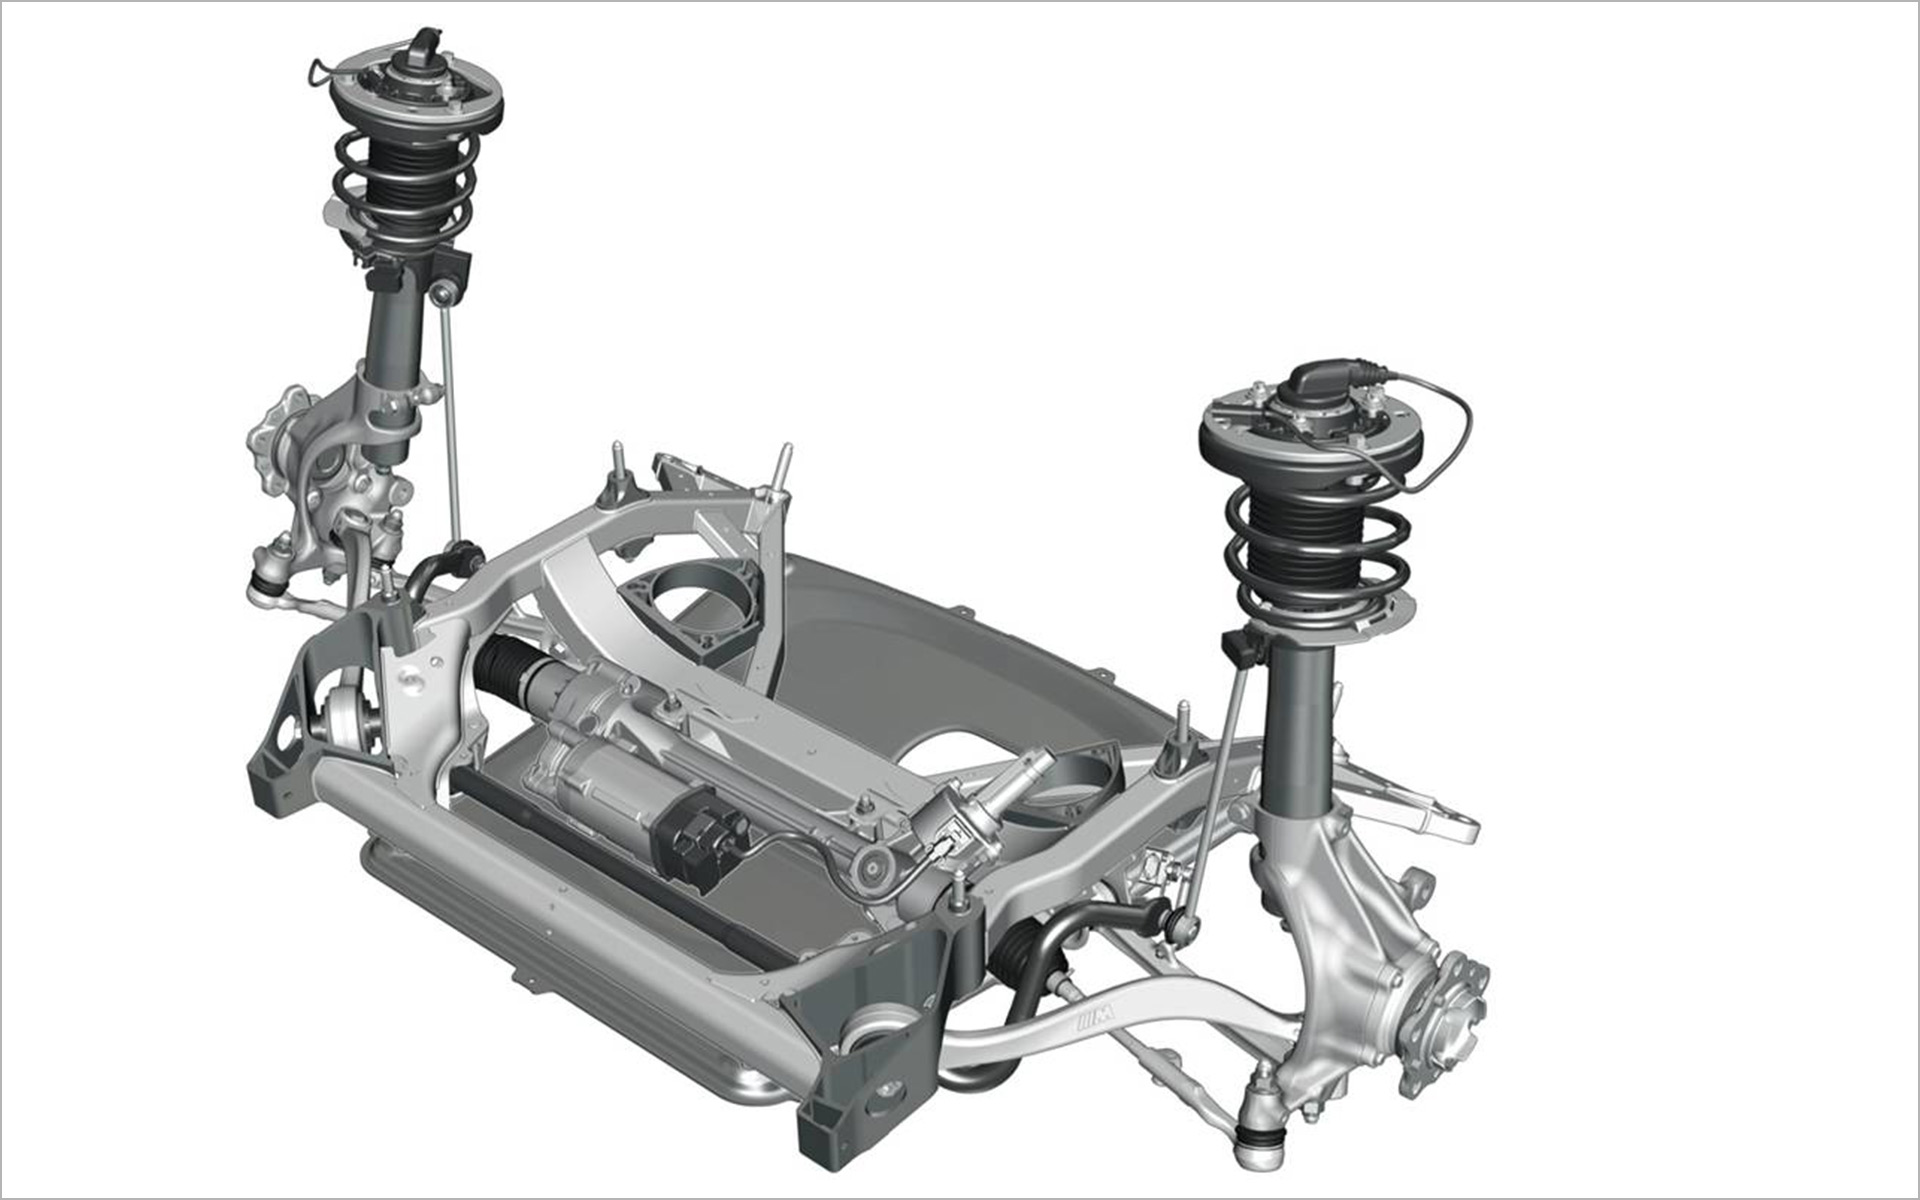 Suspension Design Pdf The Suspension Of The Bmw M3 And Bmw M4